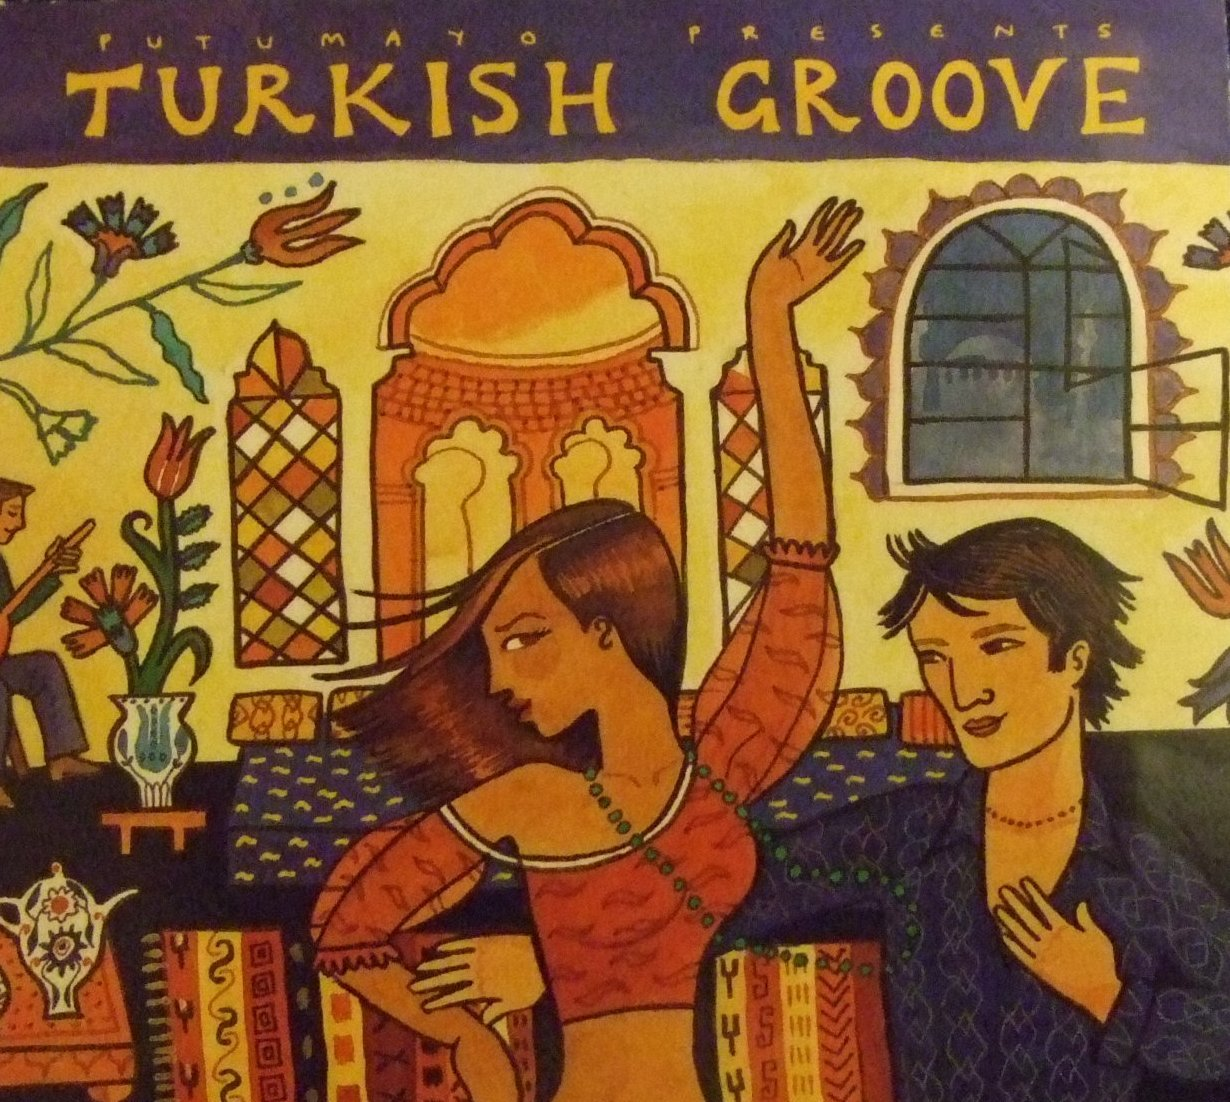 """""""Turkish Groove"""" offers a musical mosaic of Balkan, Central Asian, and Middle Eastern flavors mixed with sophisticated global pop and dance music."""